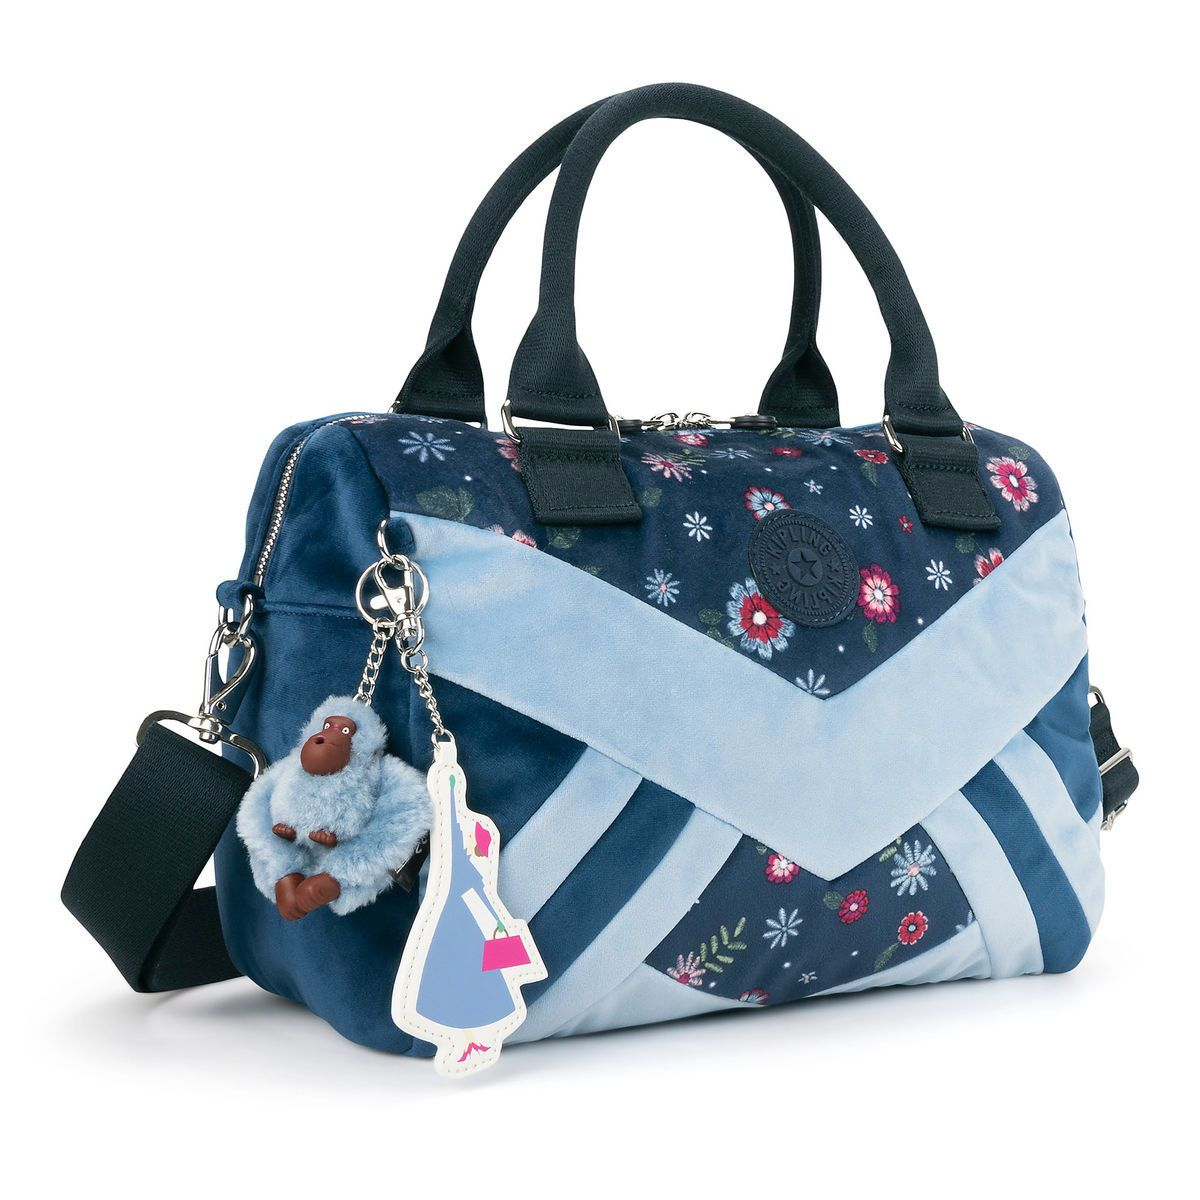 17f9f9837 Mary Poppins Returns Handbag by Kipling in 2019 | Wants | Mary ...